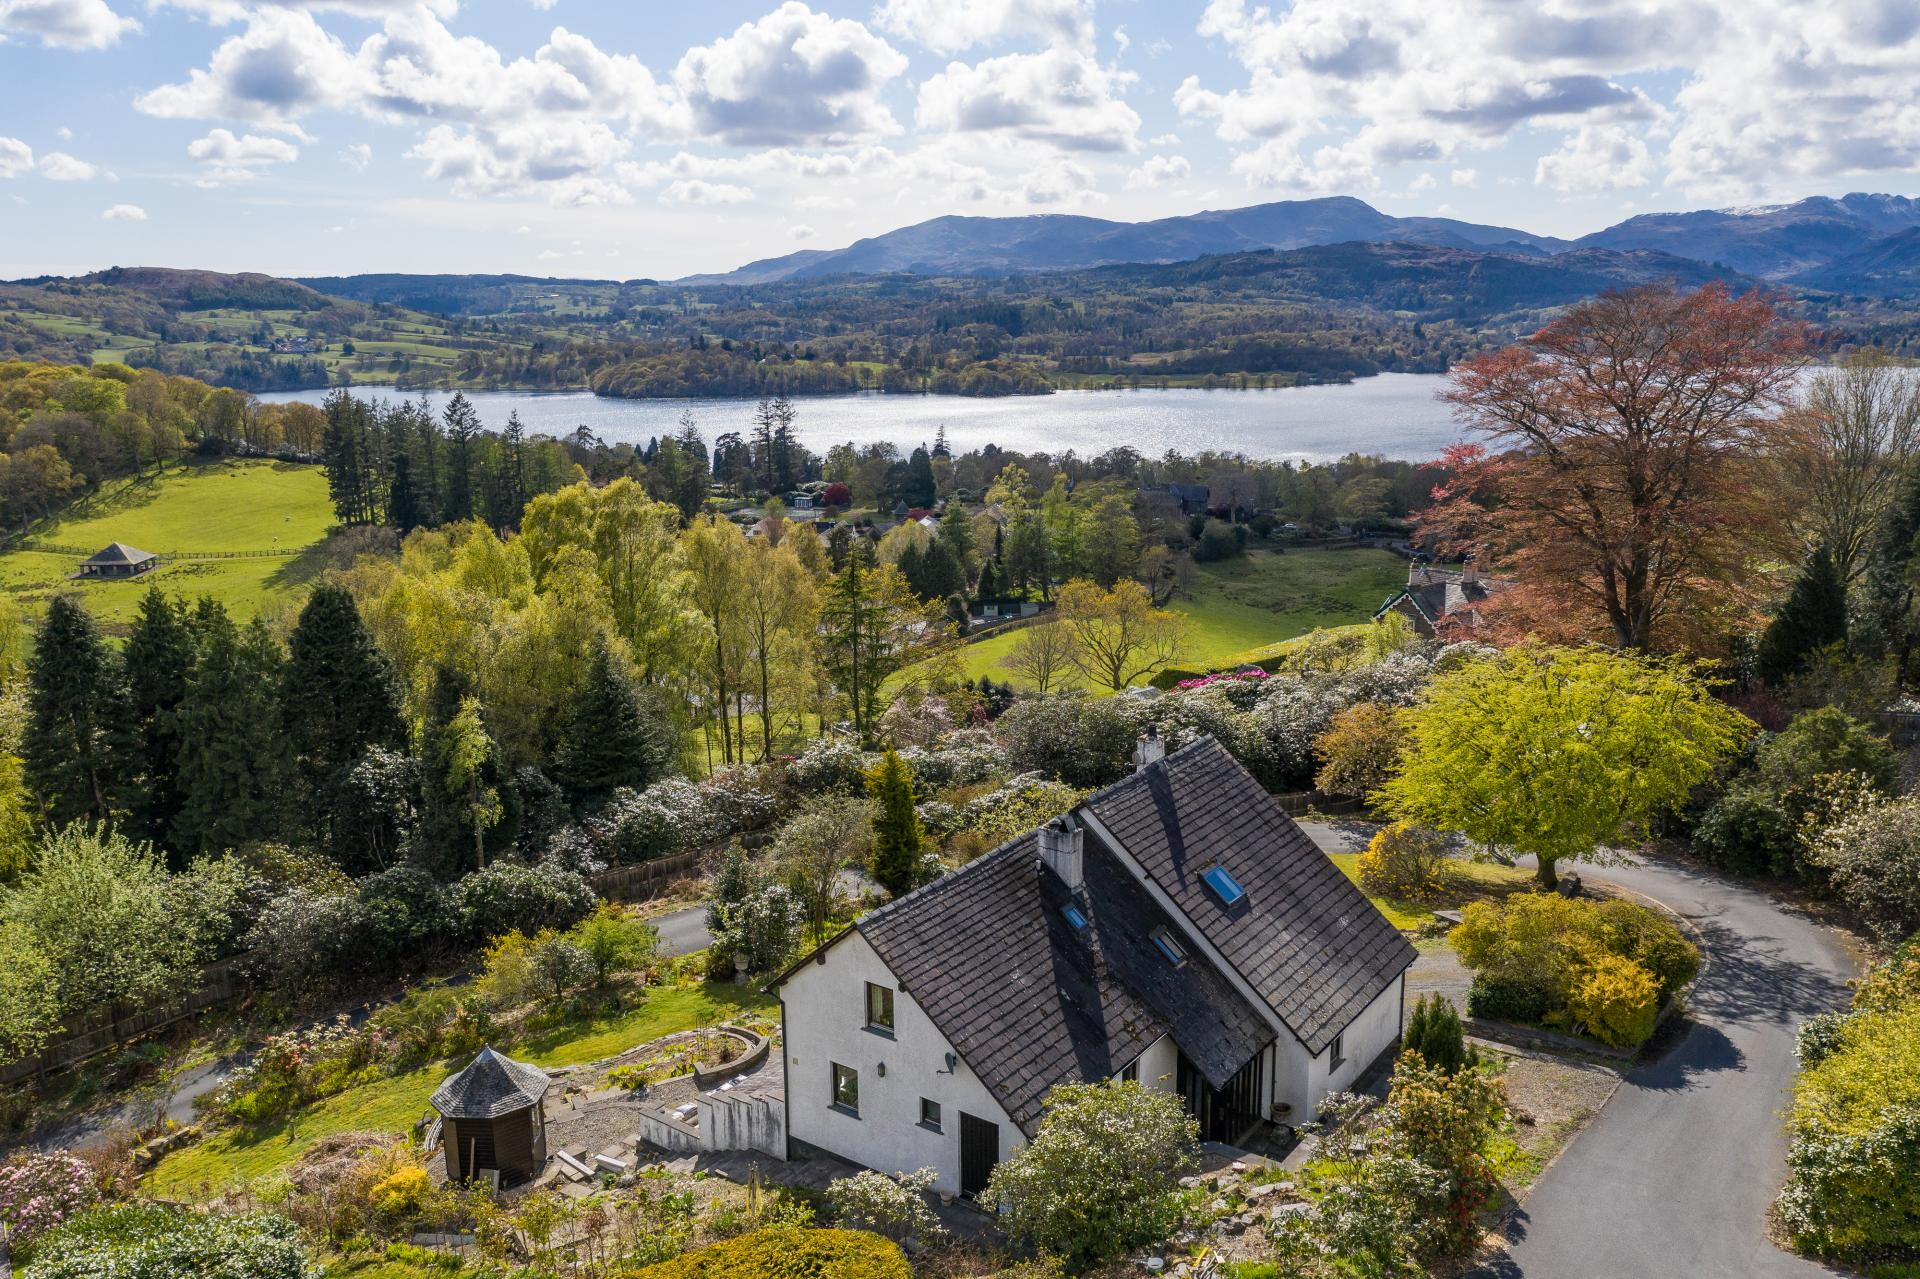 Beautiful Lake District home with amazing views in Troutbeck, Cumbria